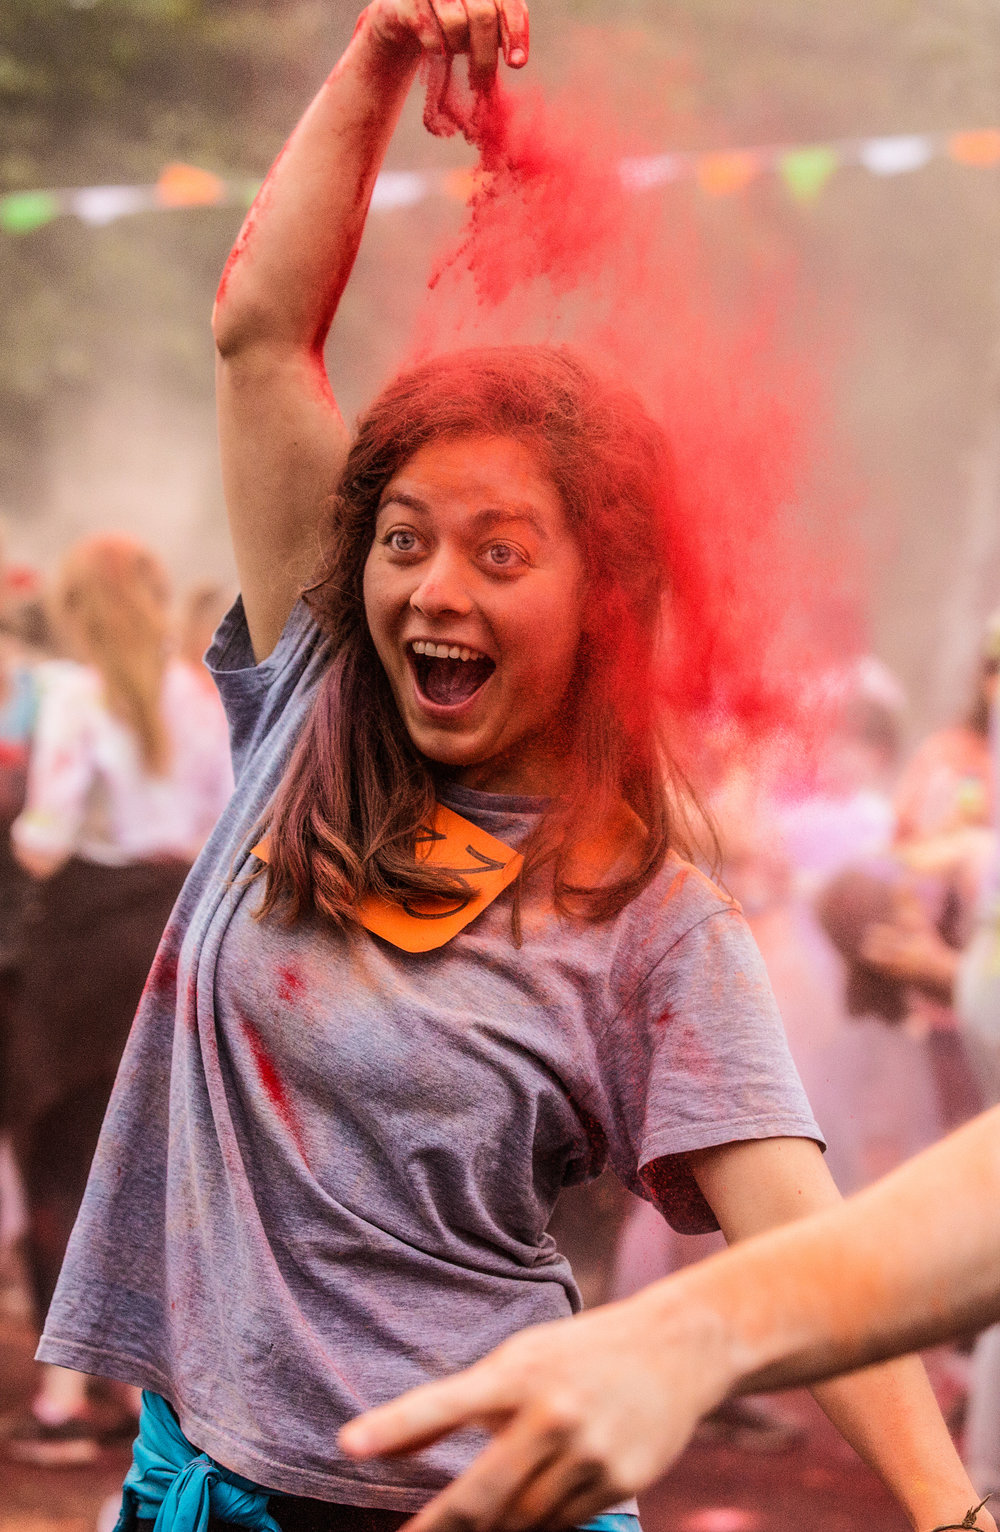 PPAI-Awards-2016-Colour-Run-2.jpg